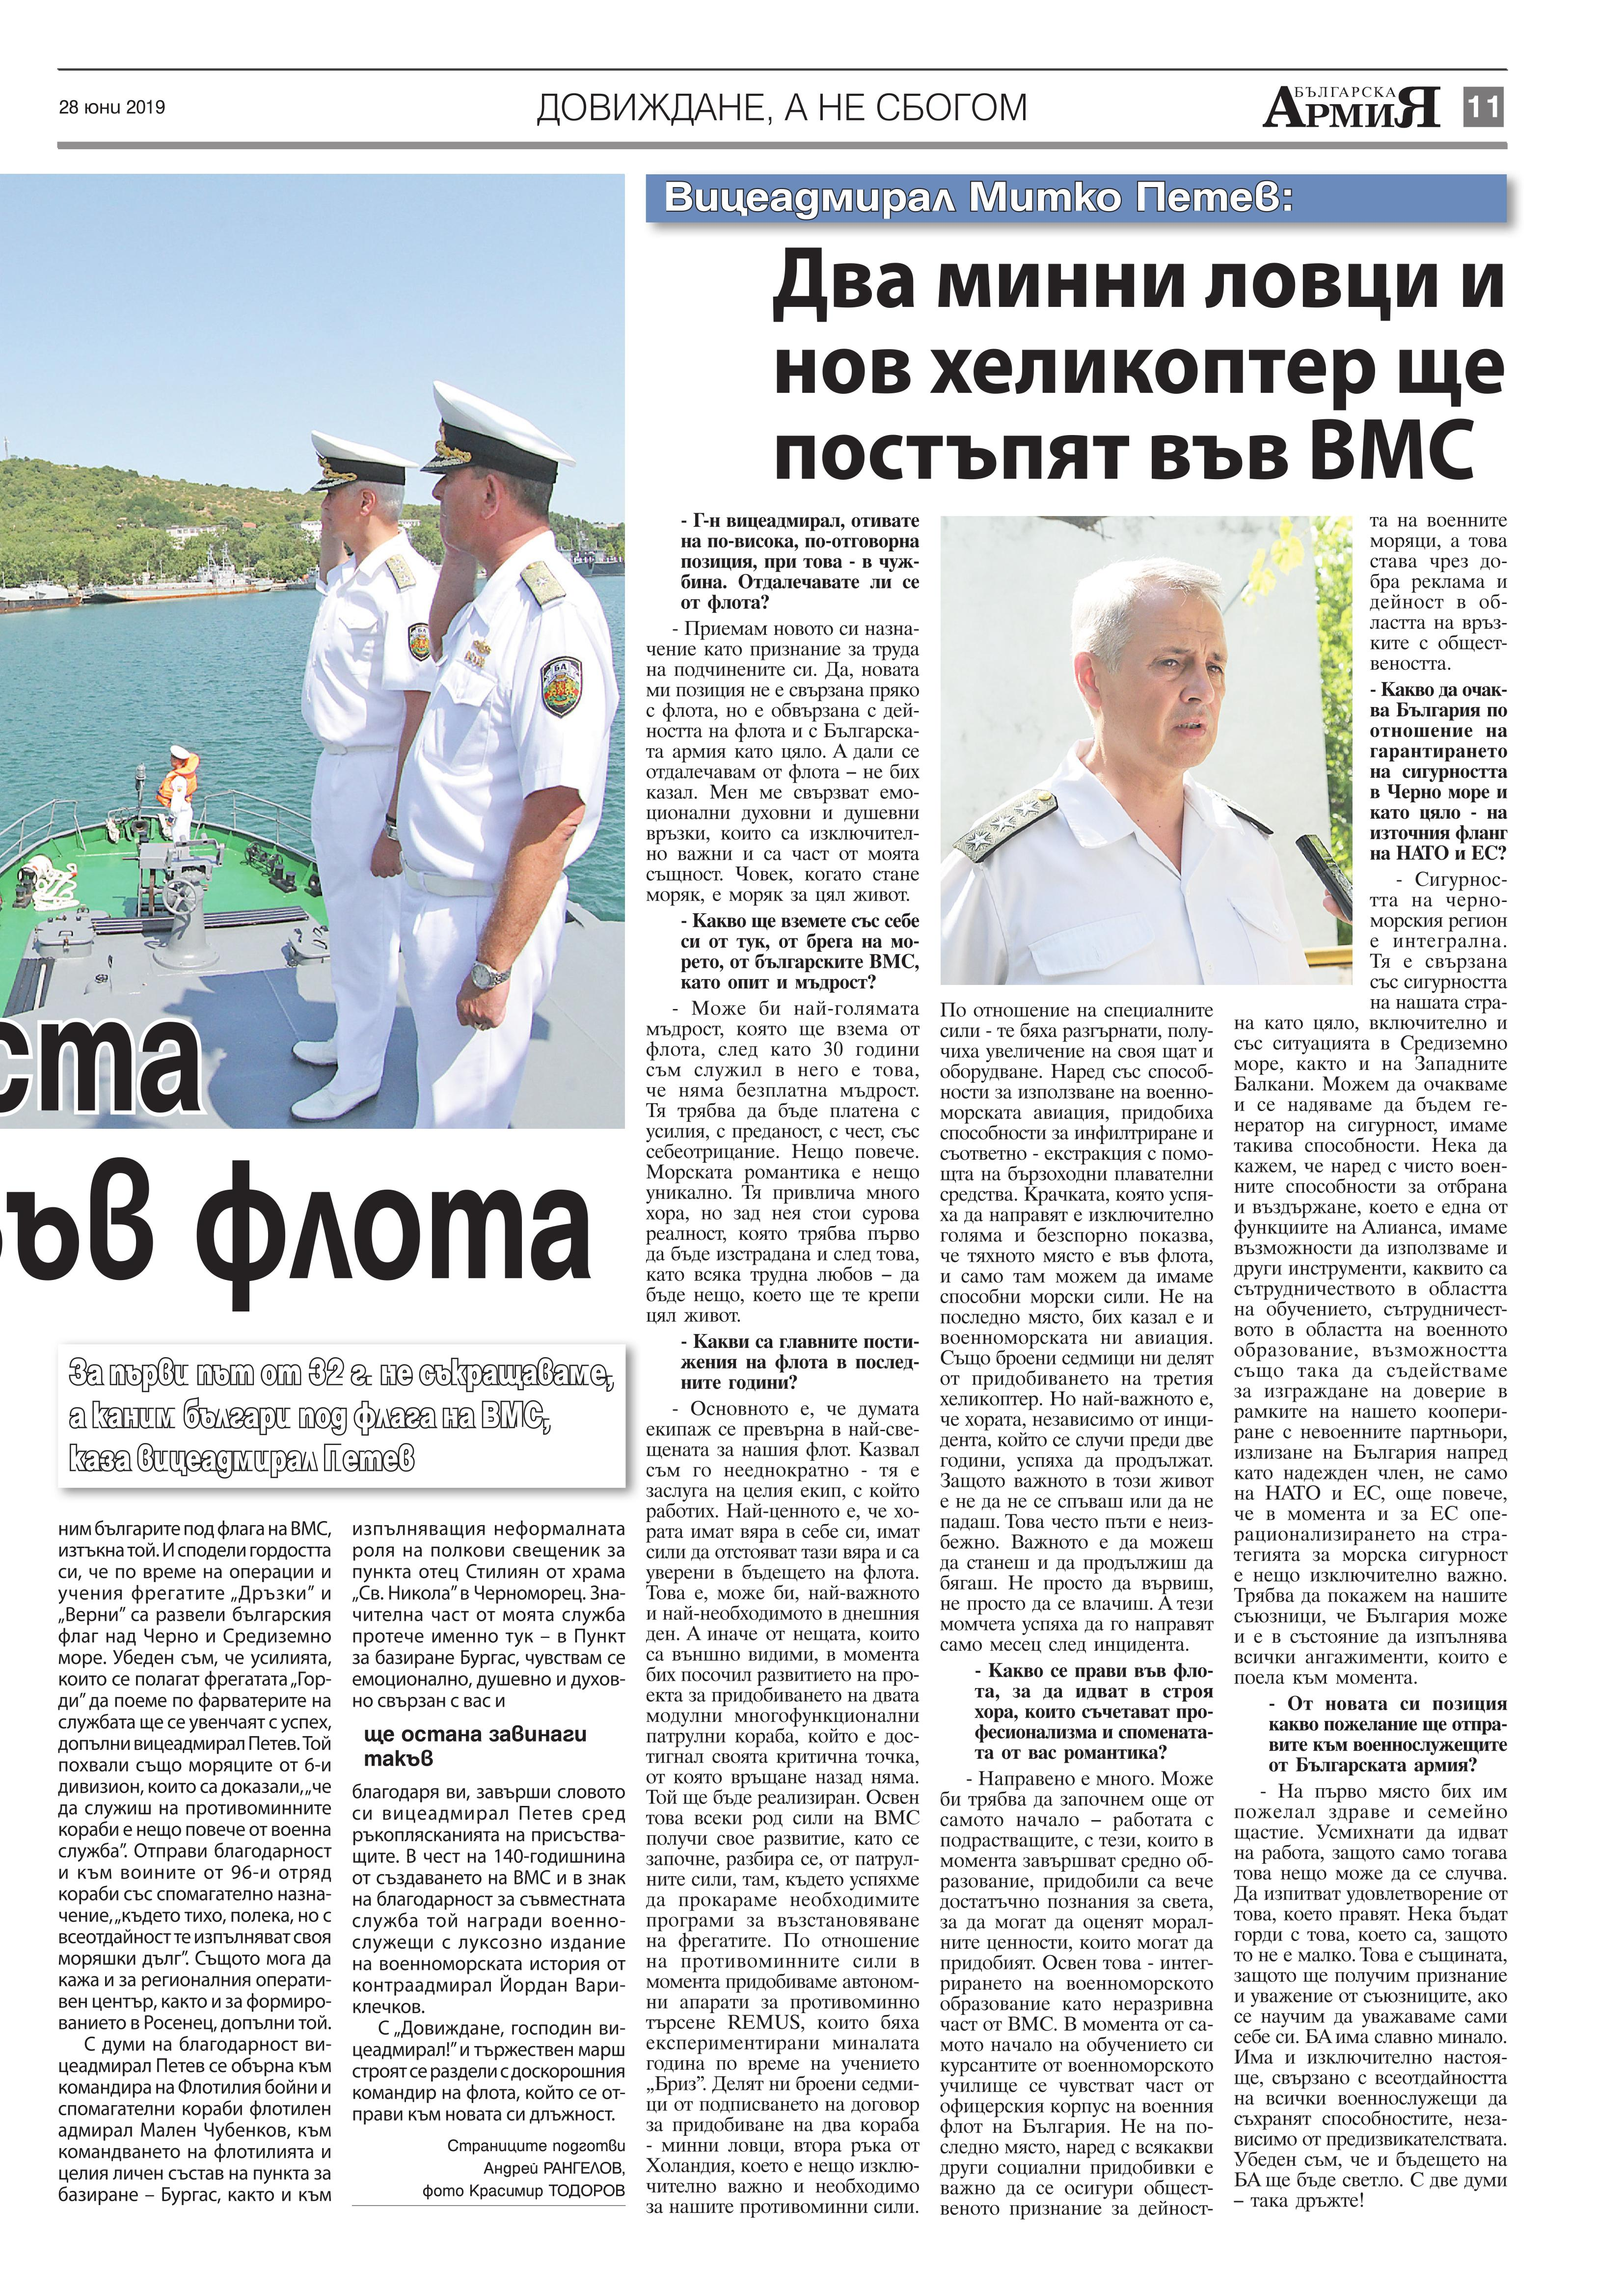 https://www.armymedia.bg/wp-content/uploads/2015/06/11.page1_-101.jpg